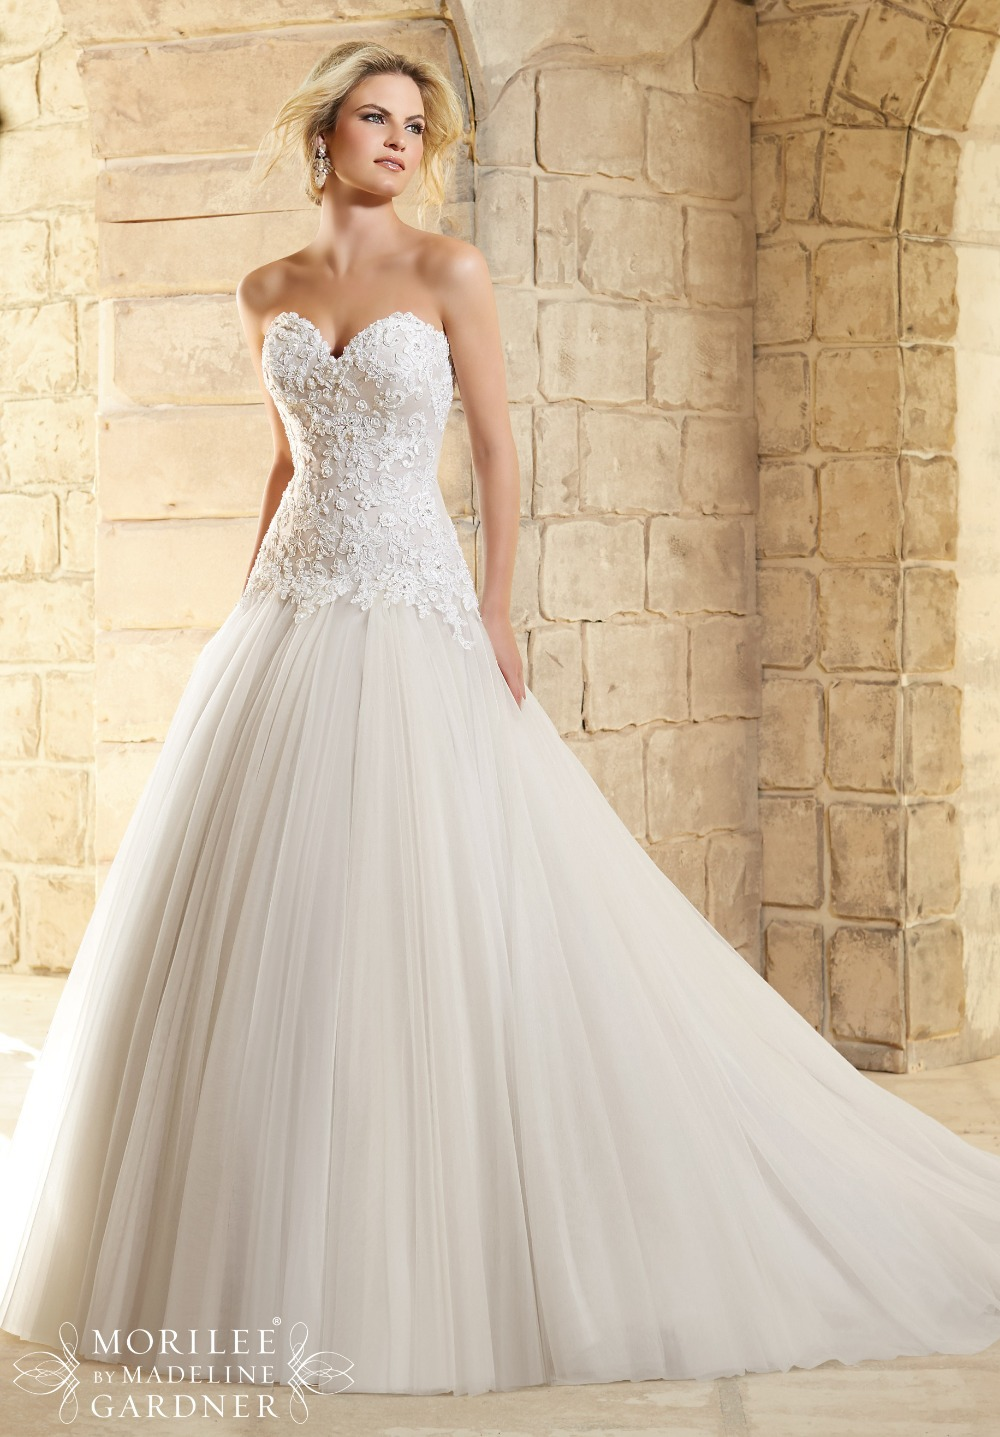 Lace wedding dress jackets suppliers lace wedding dress jackets suppliers 15 ombrellifo Images